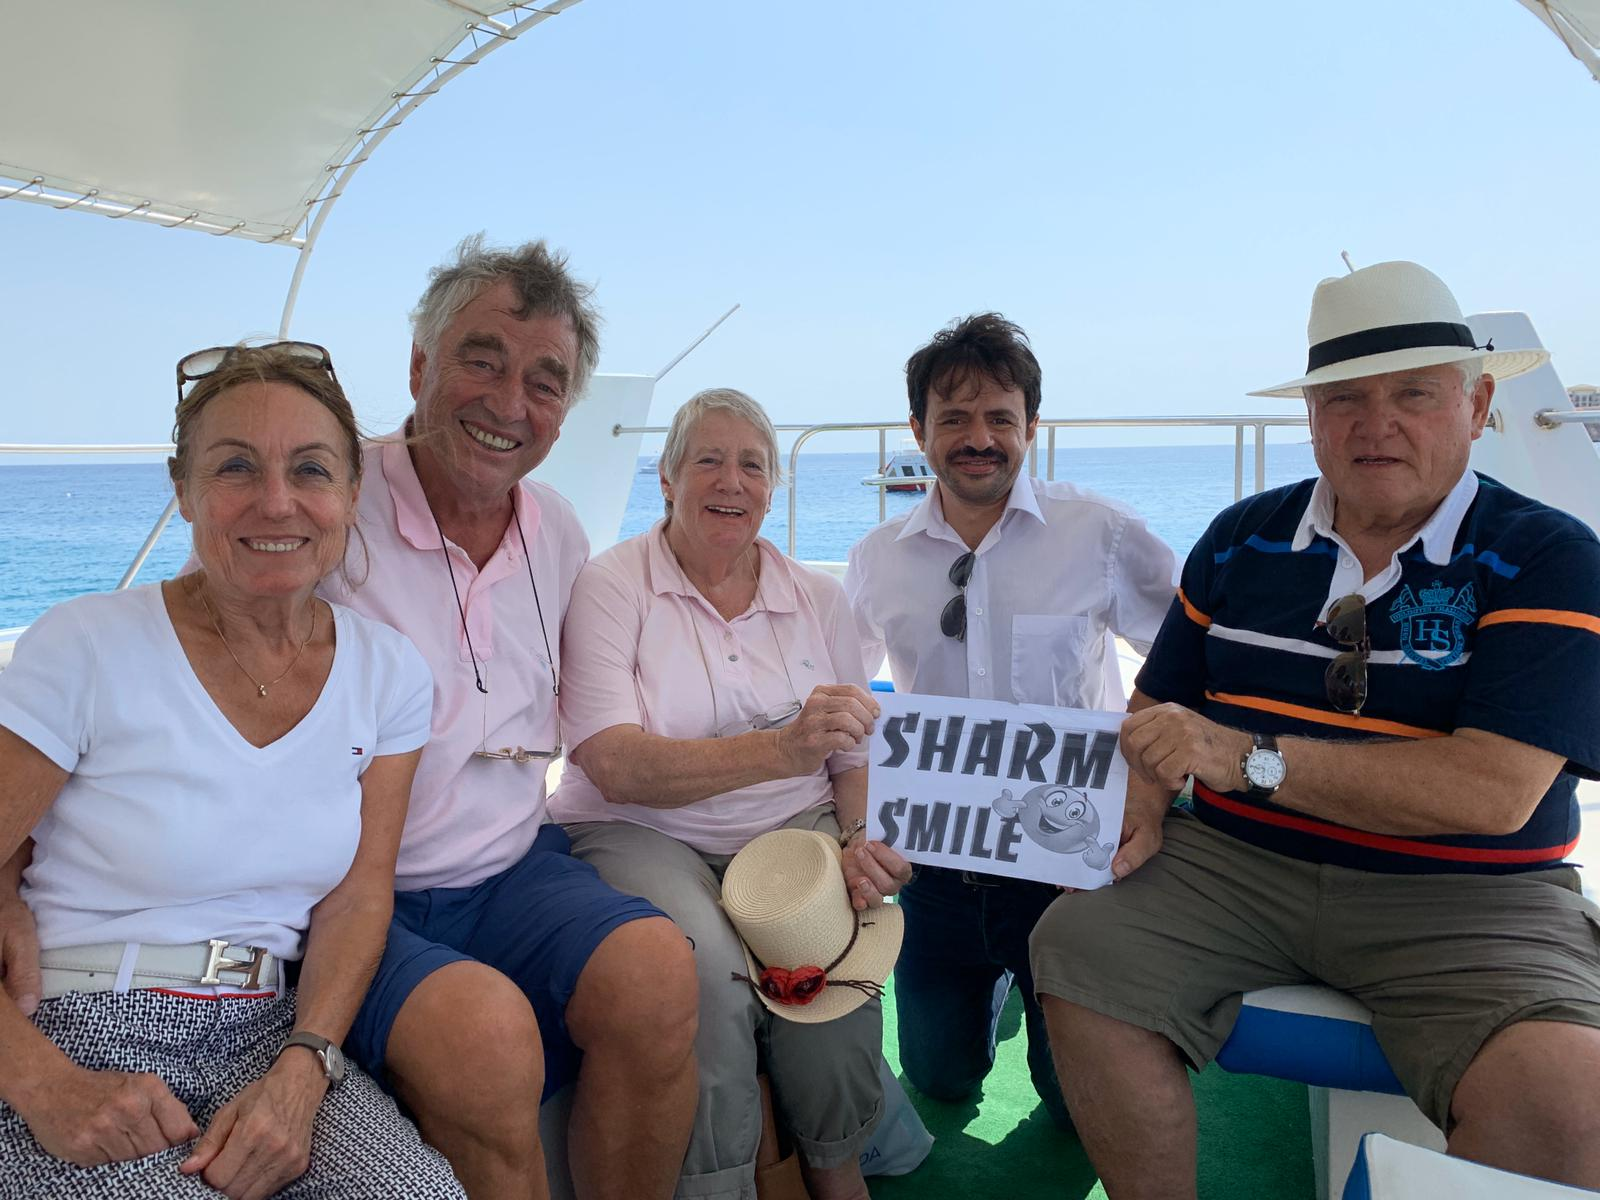 sharm-el-sheikh-excursions-with-sharm-smile